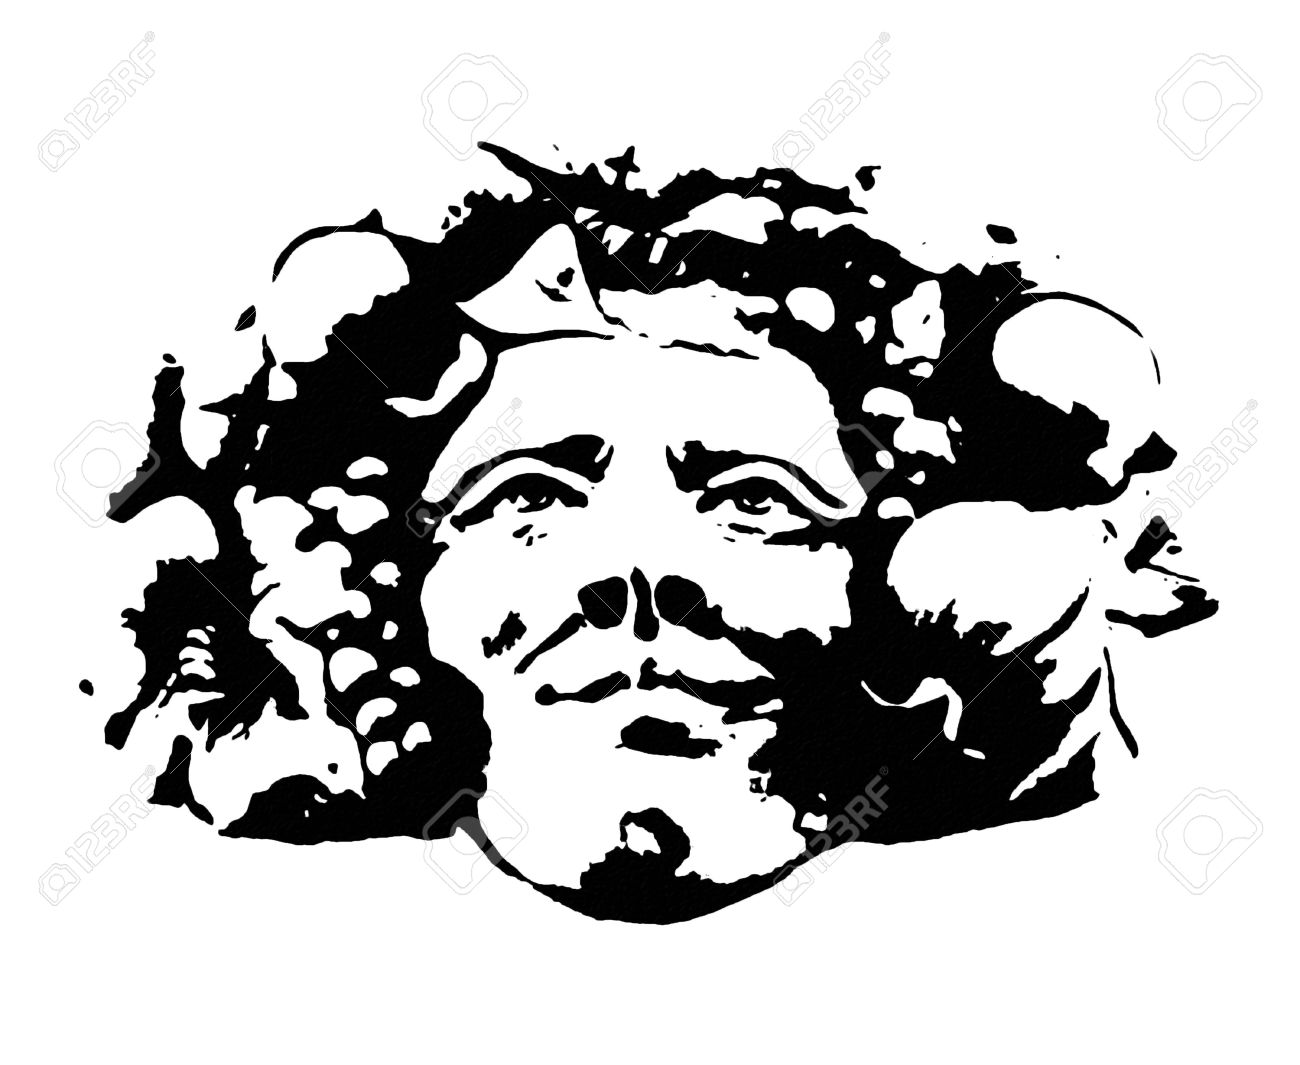 Clipart E And Artistic Rappresentation Of The Bacchus Head, Winw.